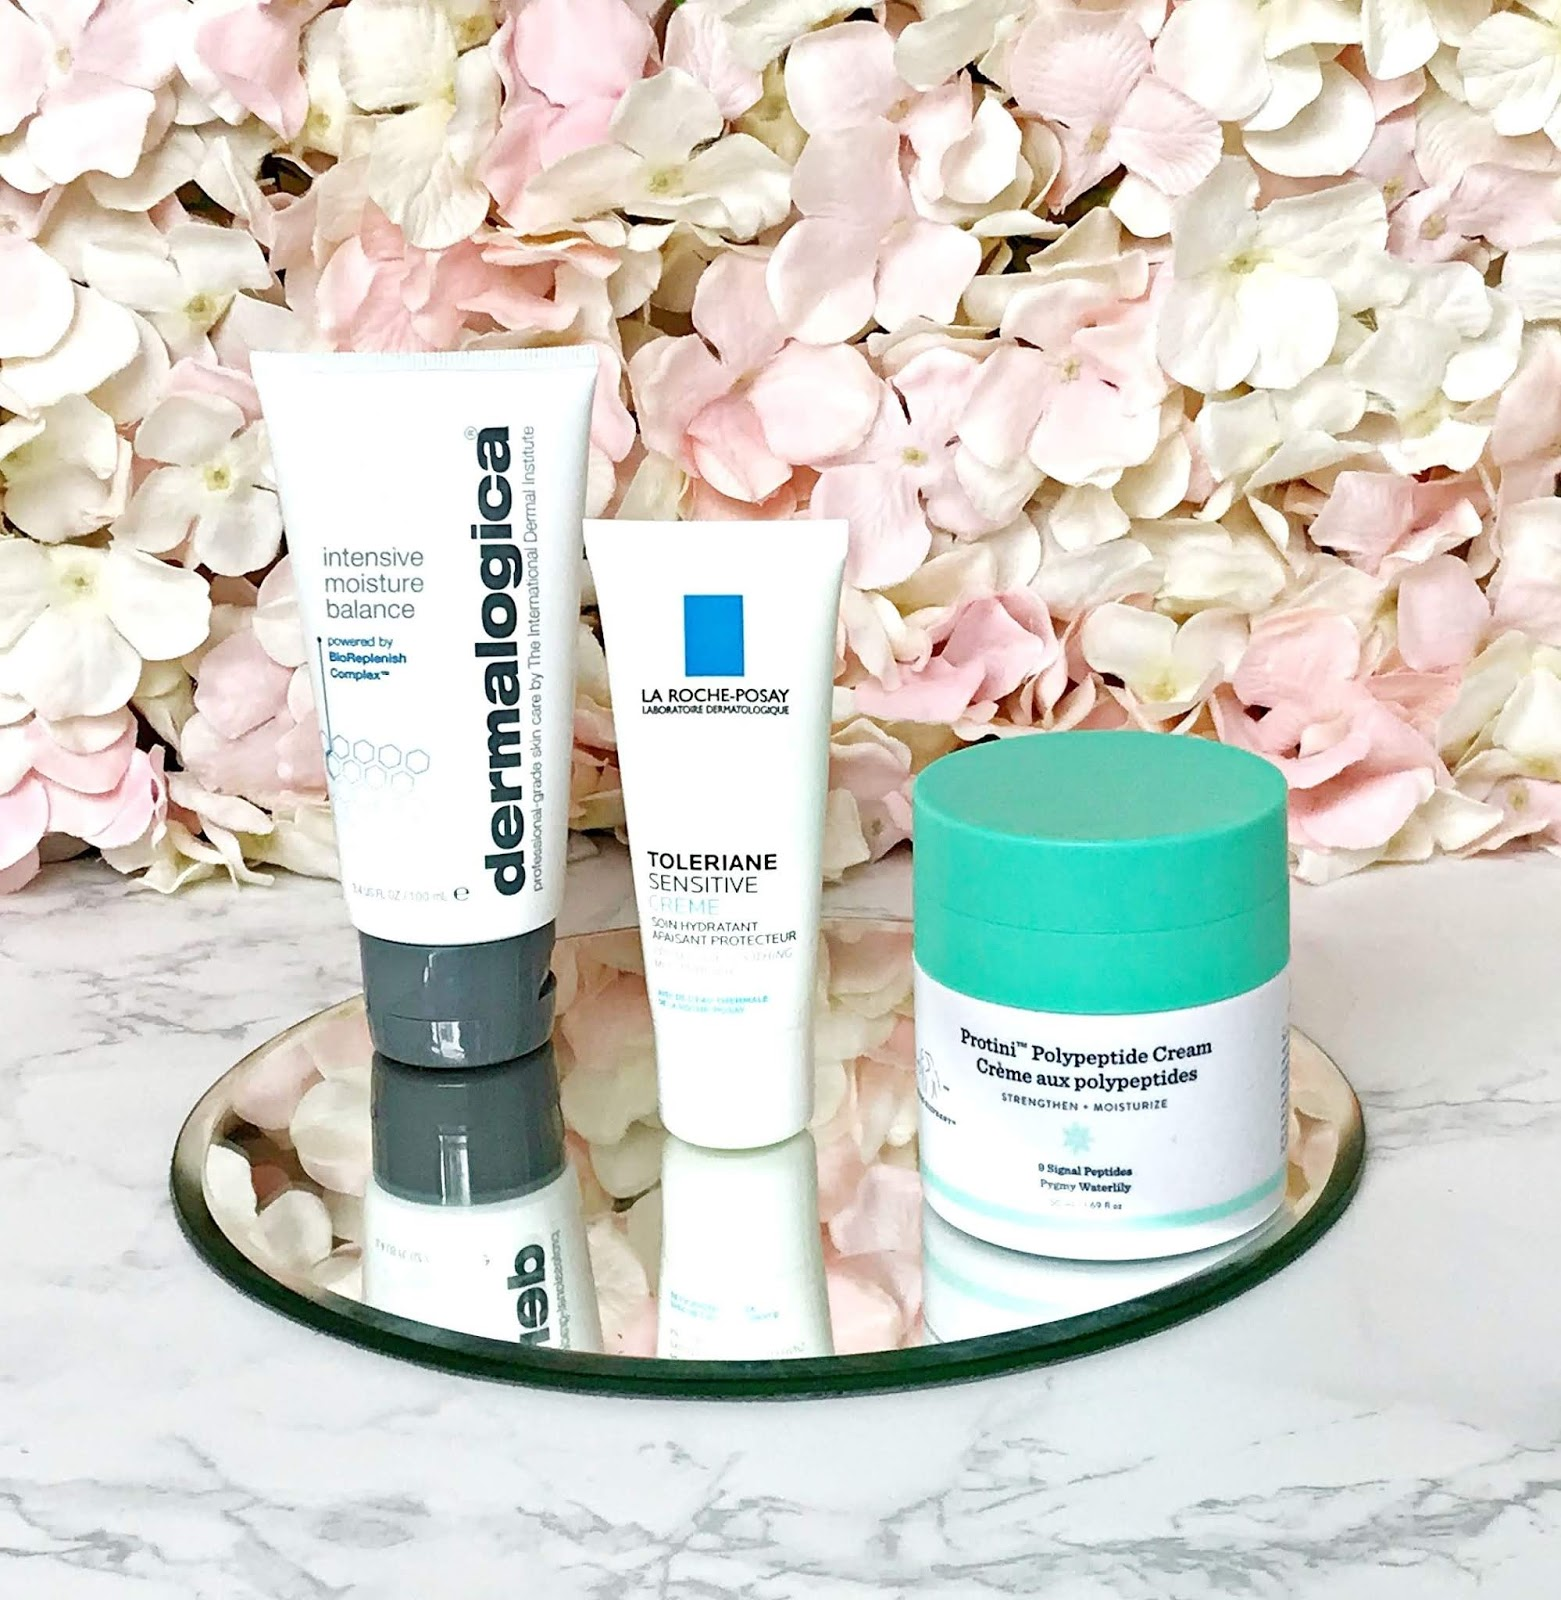 3 brilliant moisturisers for dry and sensitive skin, Drunk Elephant, Protini Peptde Cream, La Roche Posay, Toleriane, Dermalogica Intensive  Moisture Balance